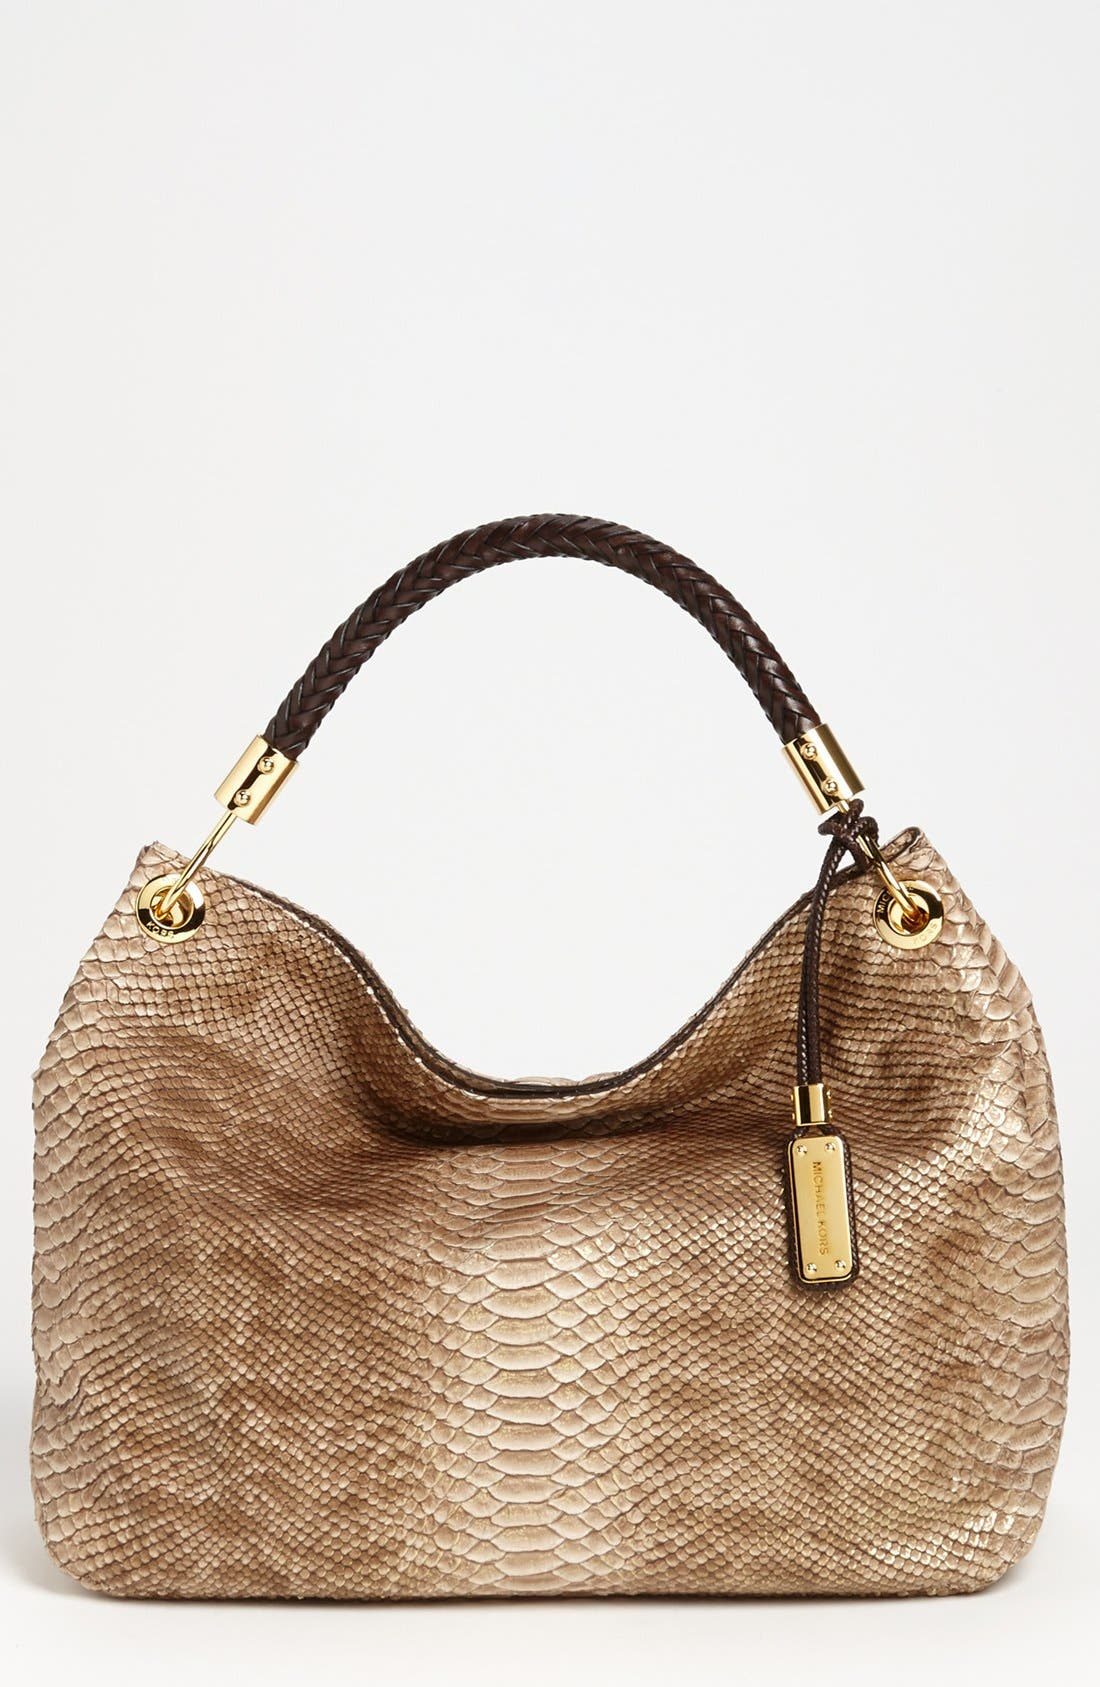 Main Image - Michael Kors 'Skorpios' Python Print Shoulder Bag